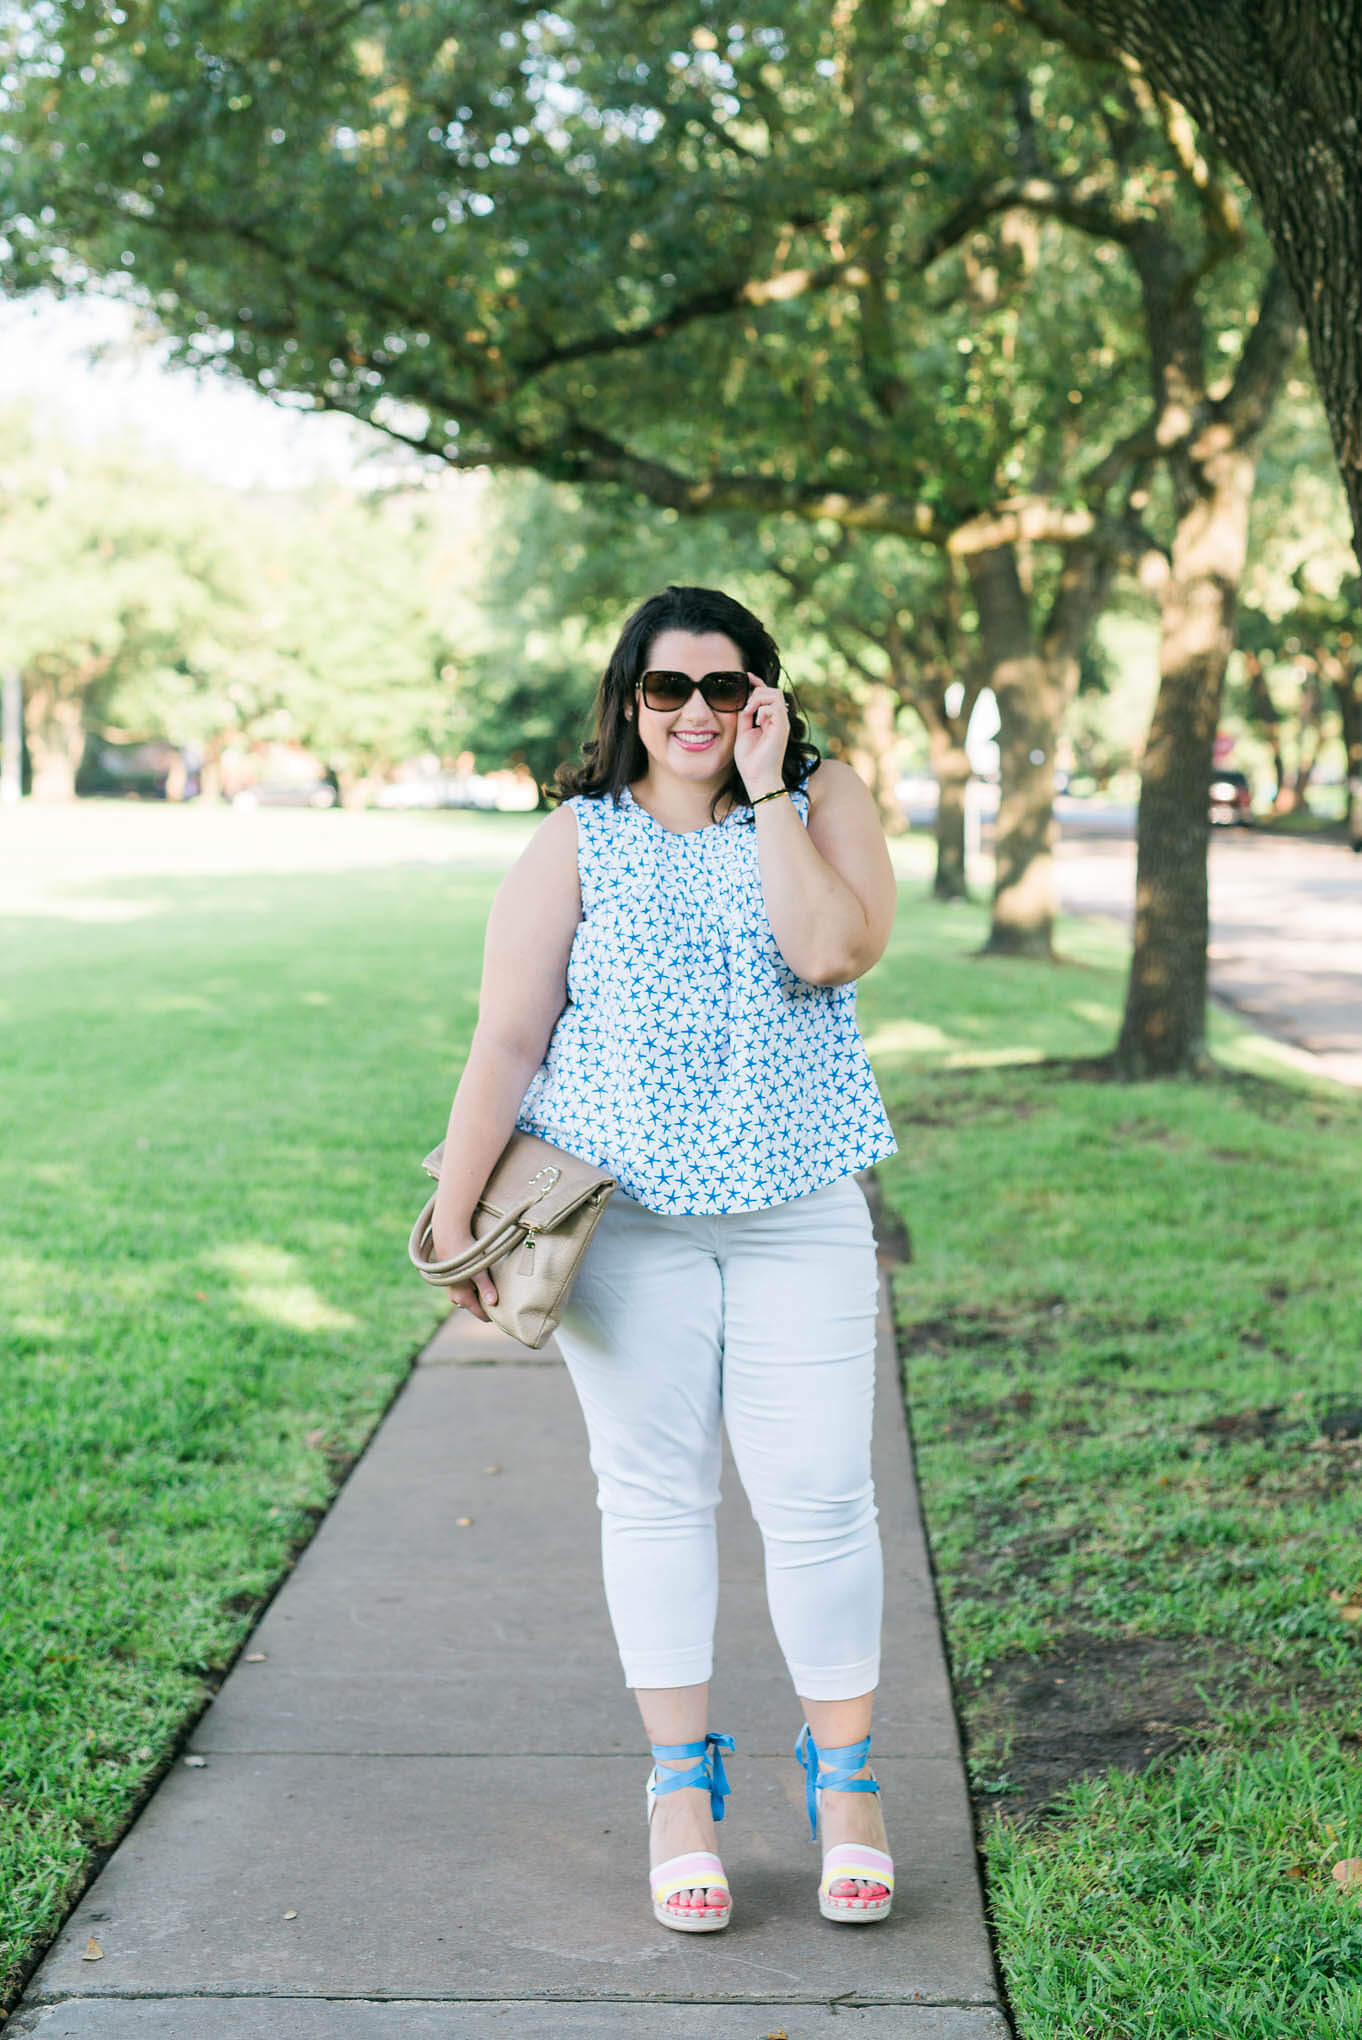 Kate Spade Summer Fun | Something Gold, Something Blue curvy style blog by Emily Bastedo | Plus Size Fashion, Summer fashion, What to wear in the summer, Kate Spade wedges, Melissa McCarthy Seven white capris, Elaine Turner purse, Chanel sunglasses, Kate Spade Broome Street collection